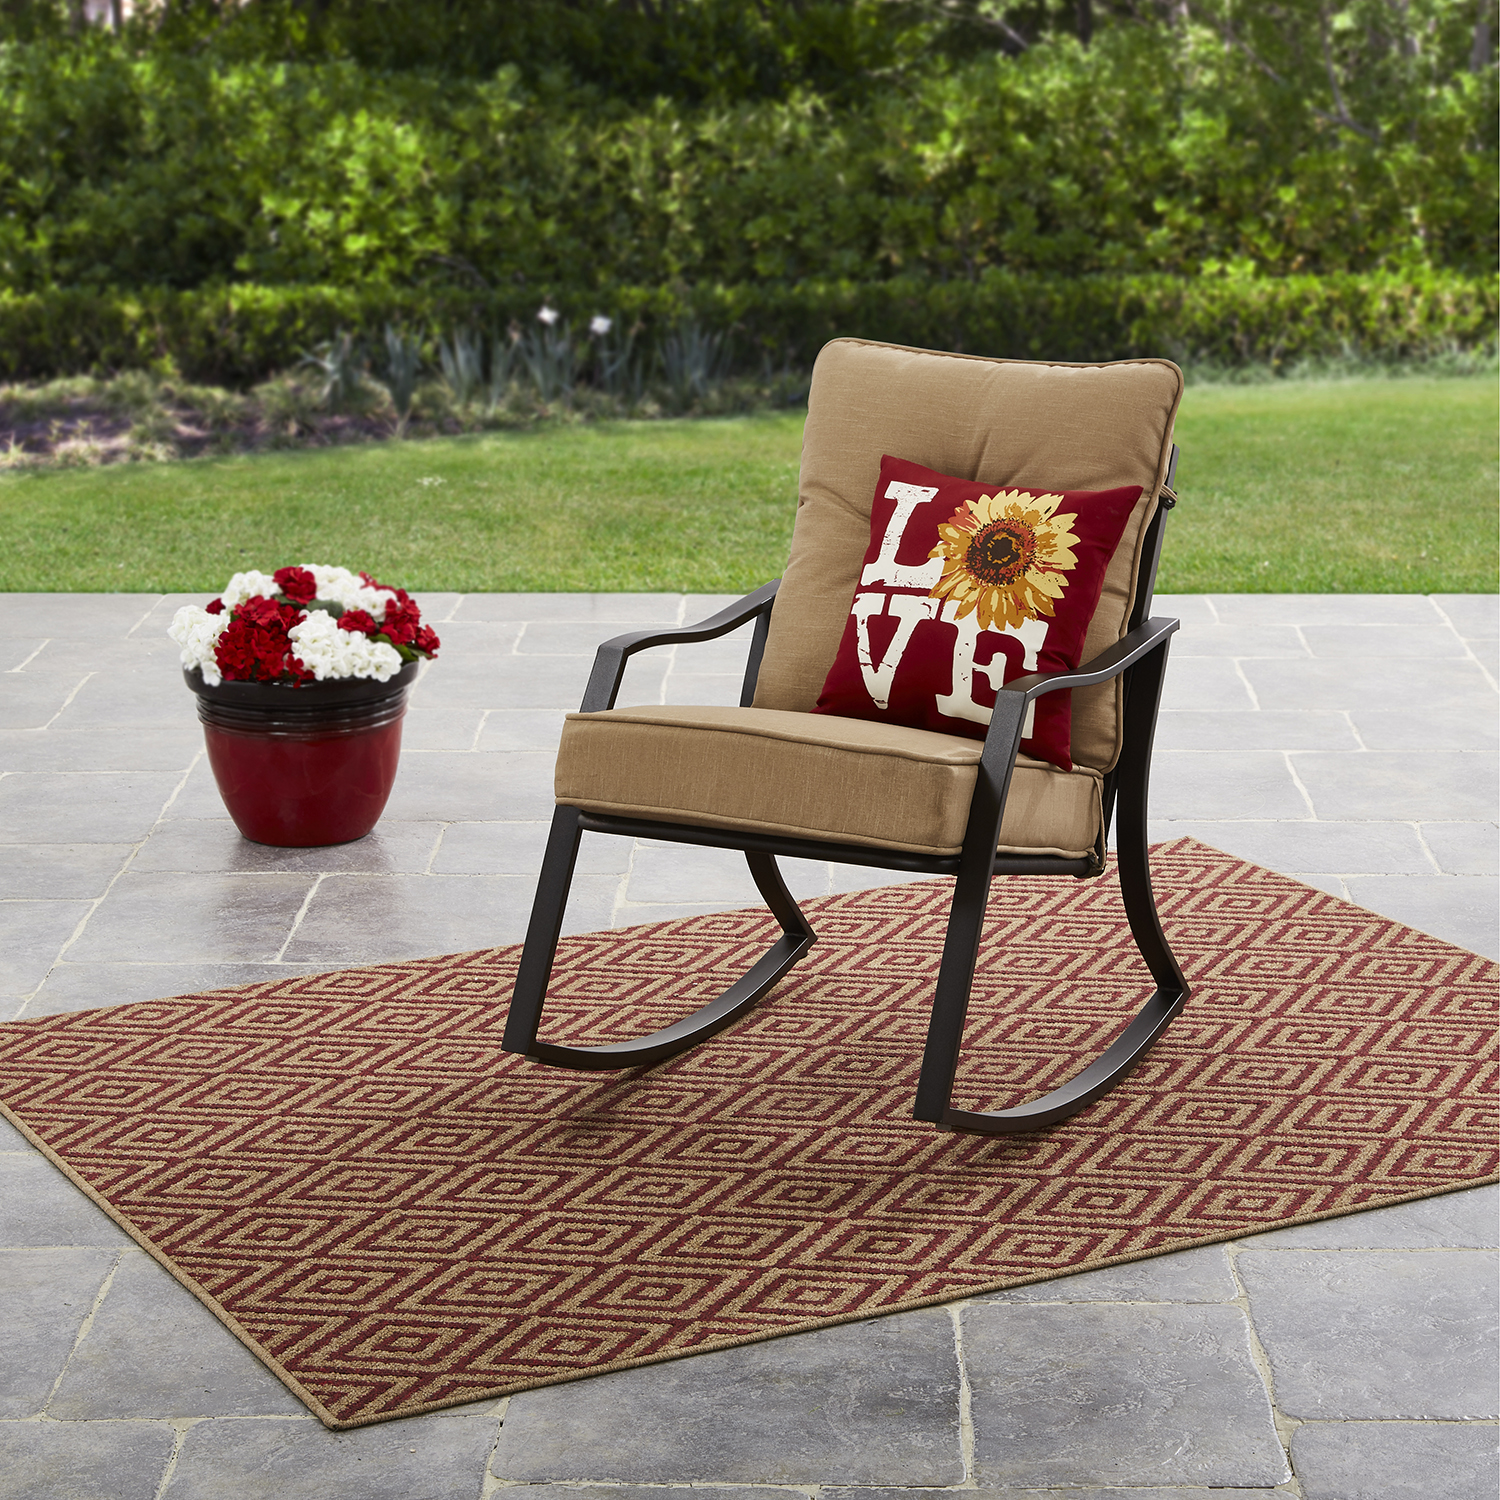 Mainstays Forest Hills Outdoor Rocking Chair - Tan